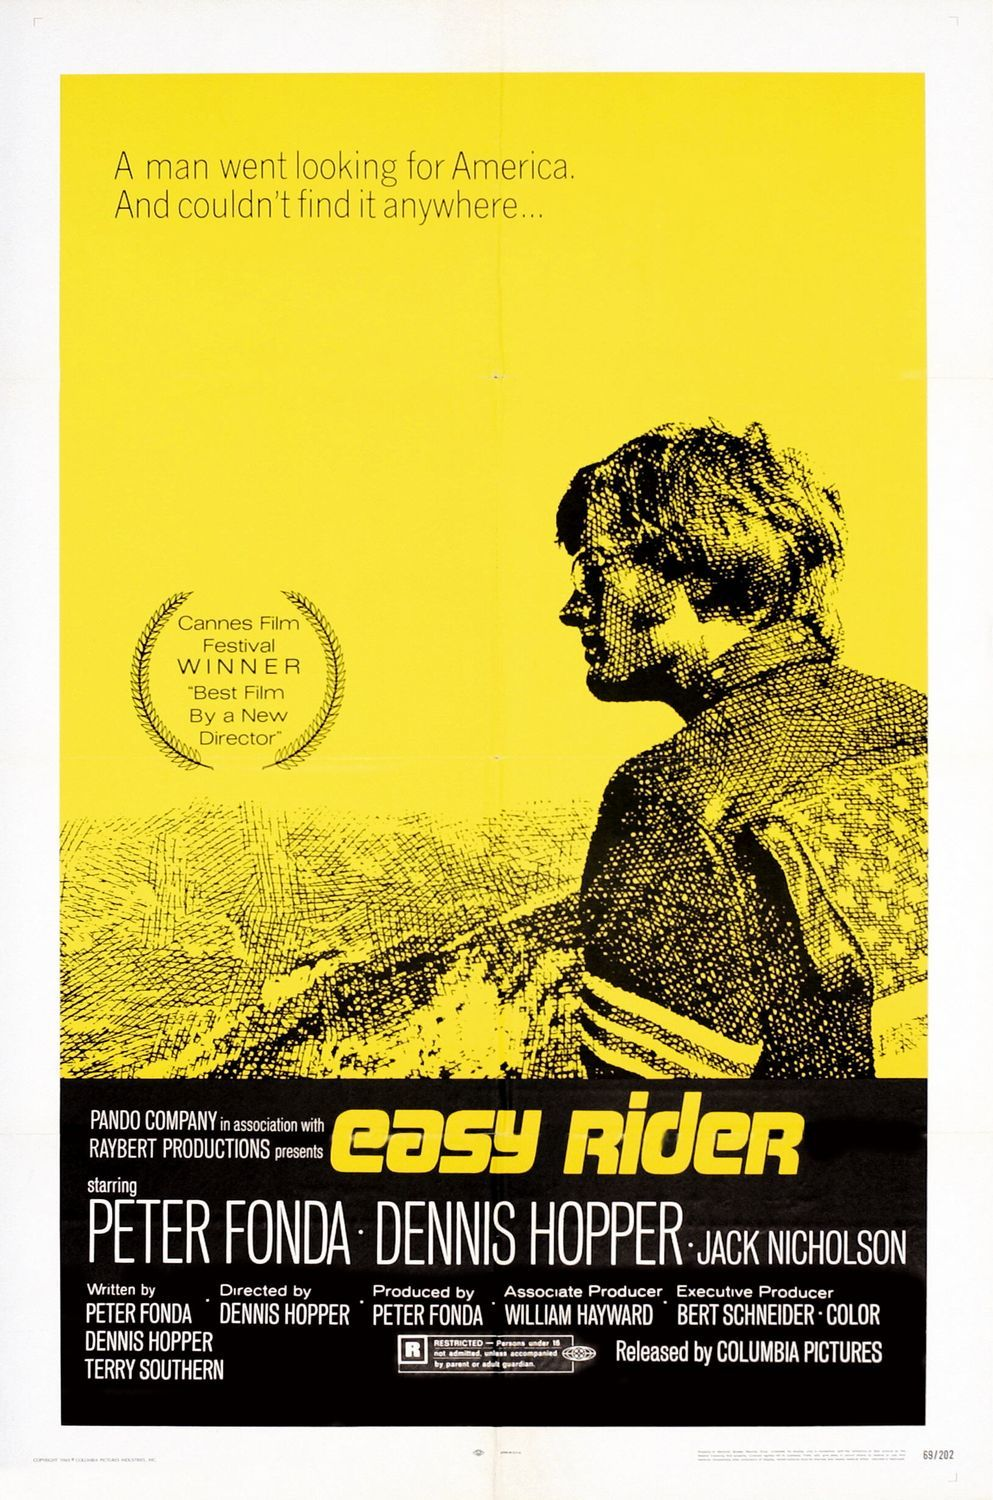 Easy Rider (1969) - Directed by: Dennis HopperStarring: Peter Fonda, Dennis Hopper, Jack Nicholson, Phil SpectorRated: RRunning Time: 1h 35mTMM Score: 4 stars out of 5STRENGTHS: Authenticity, IntimacyWEAKNESSES: Slow Pacing